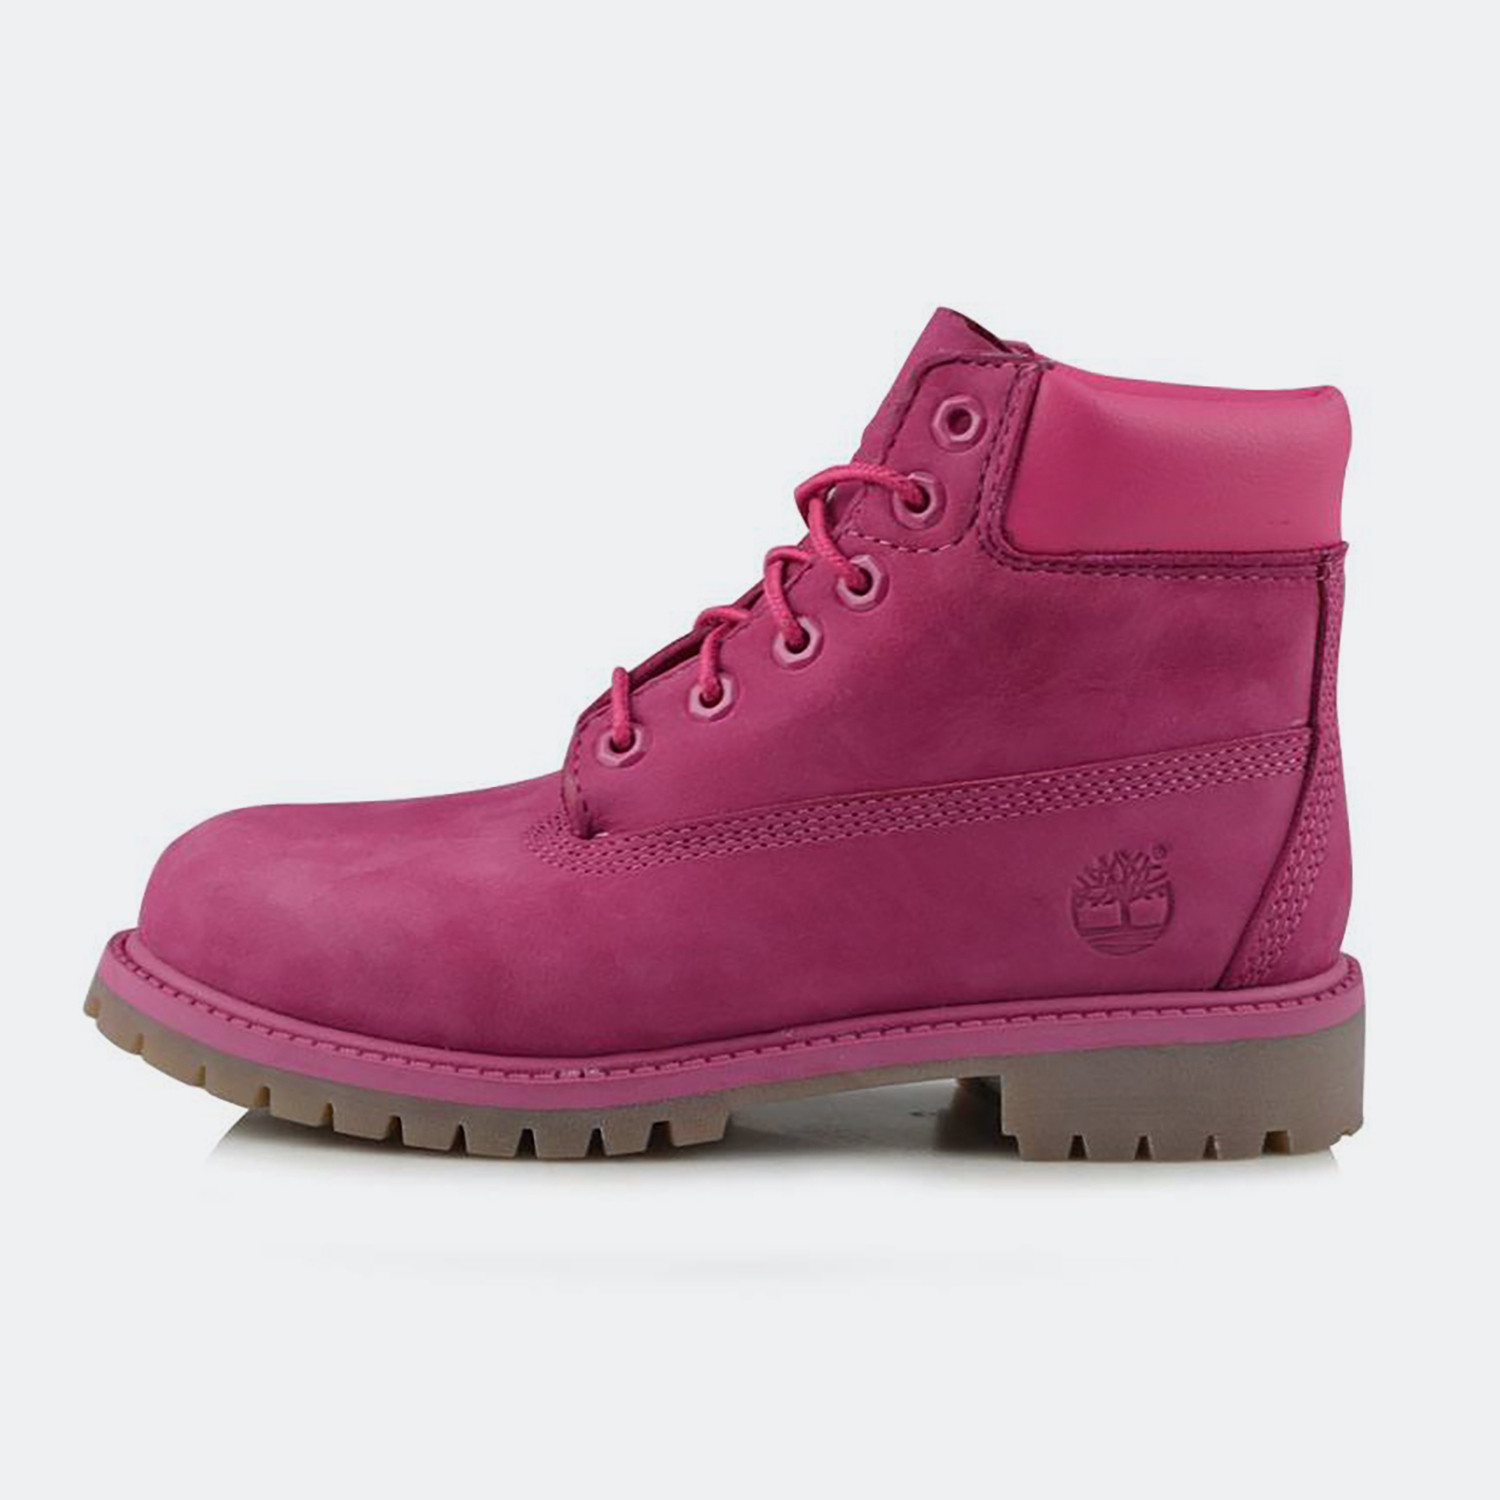 Timberland 6 In Premium Wp Boot Pink (1080031557_3142)